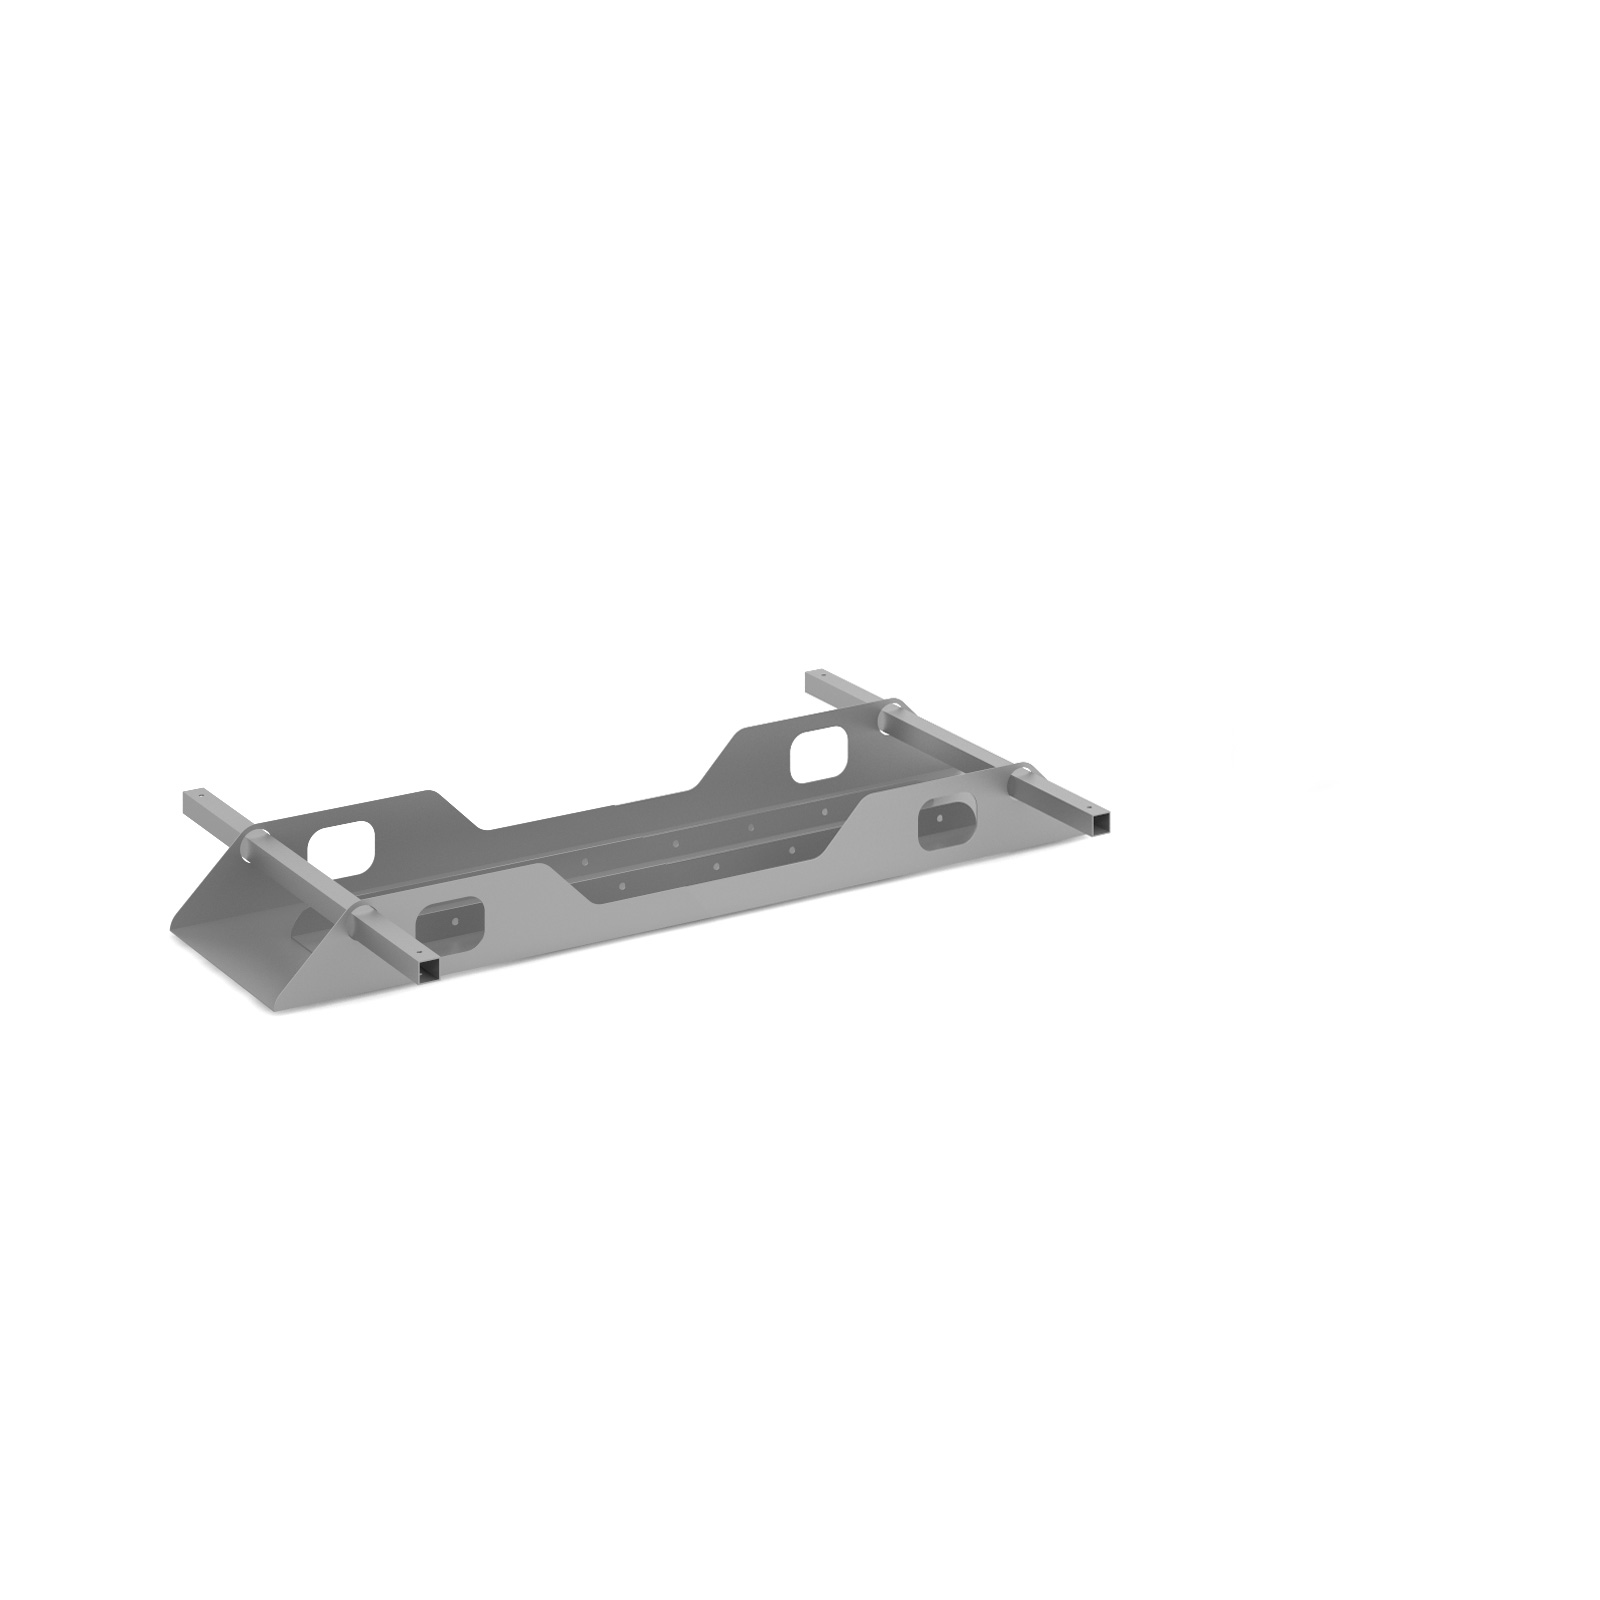 Cable Tidies Connex double cable tray